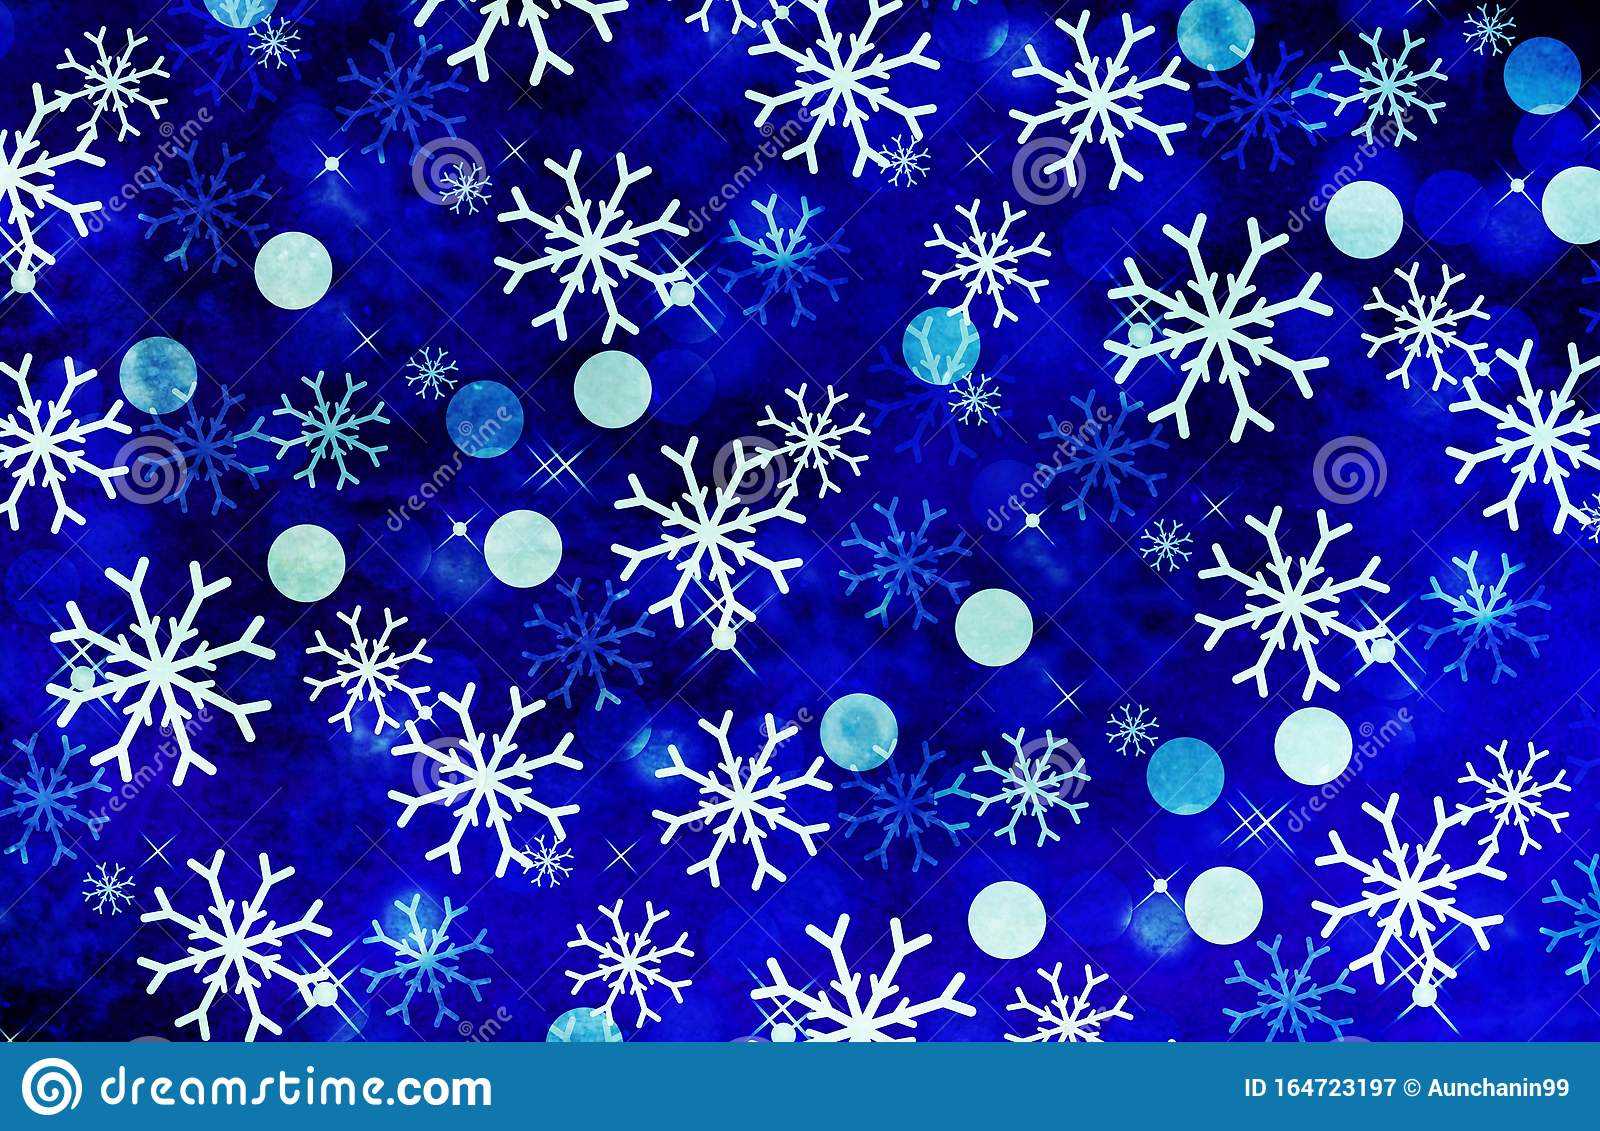 christmas background snowflakes blue illustration design colors abstract winter creative wall wallpaper backdrop print 164723197